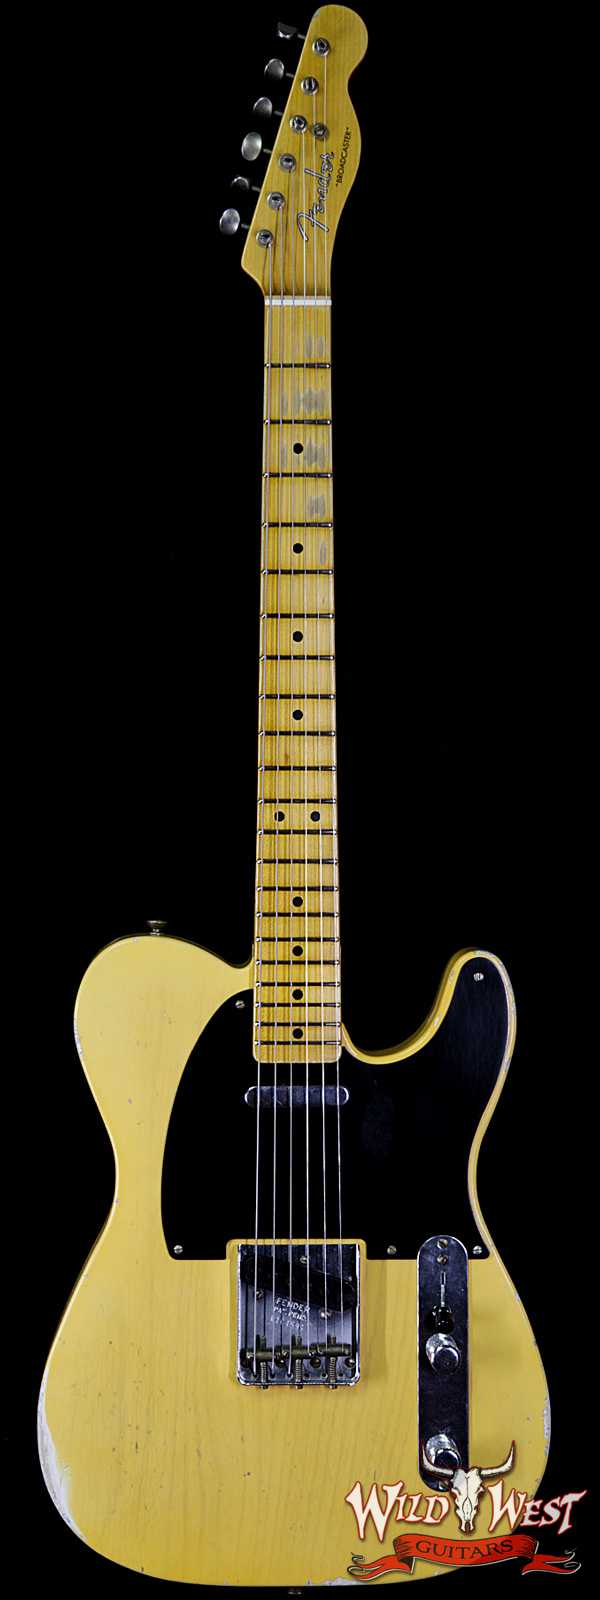 Fender Custom Shop Limited Edition 70th Anniversary Broadcaster (Telecaster) Relic Nocaster Blonde R104599